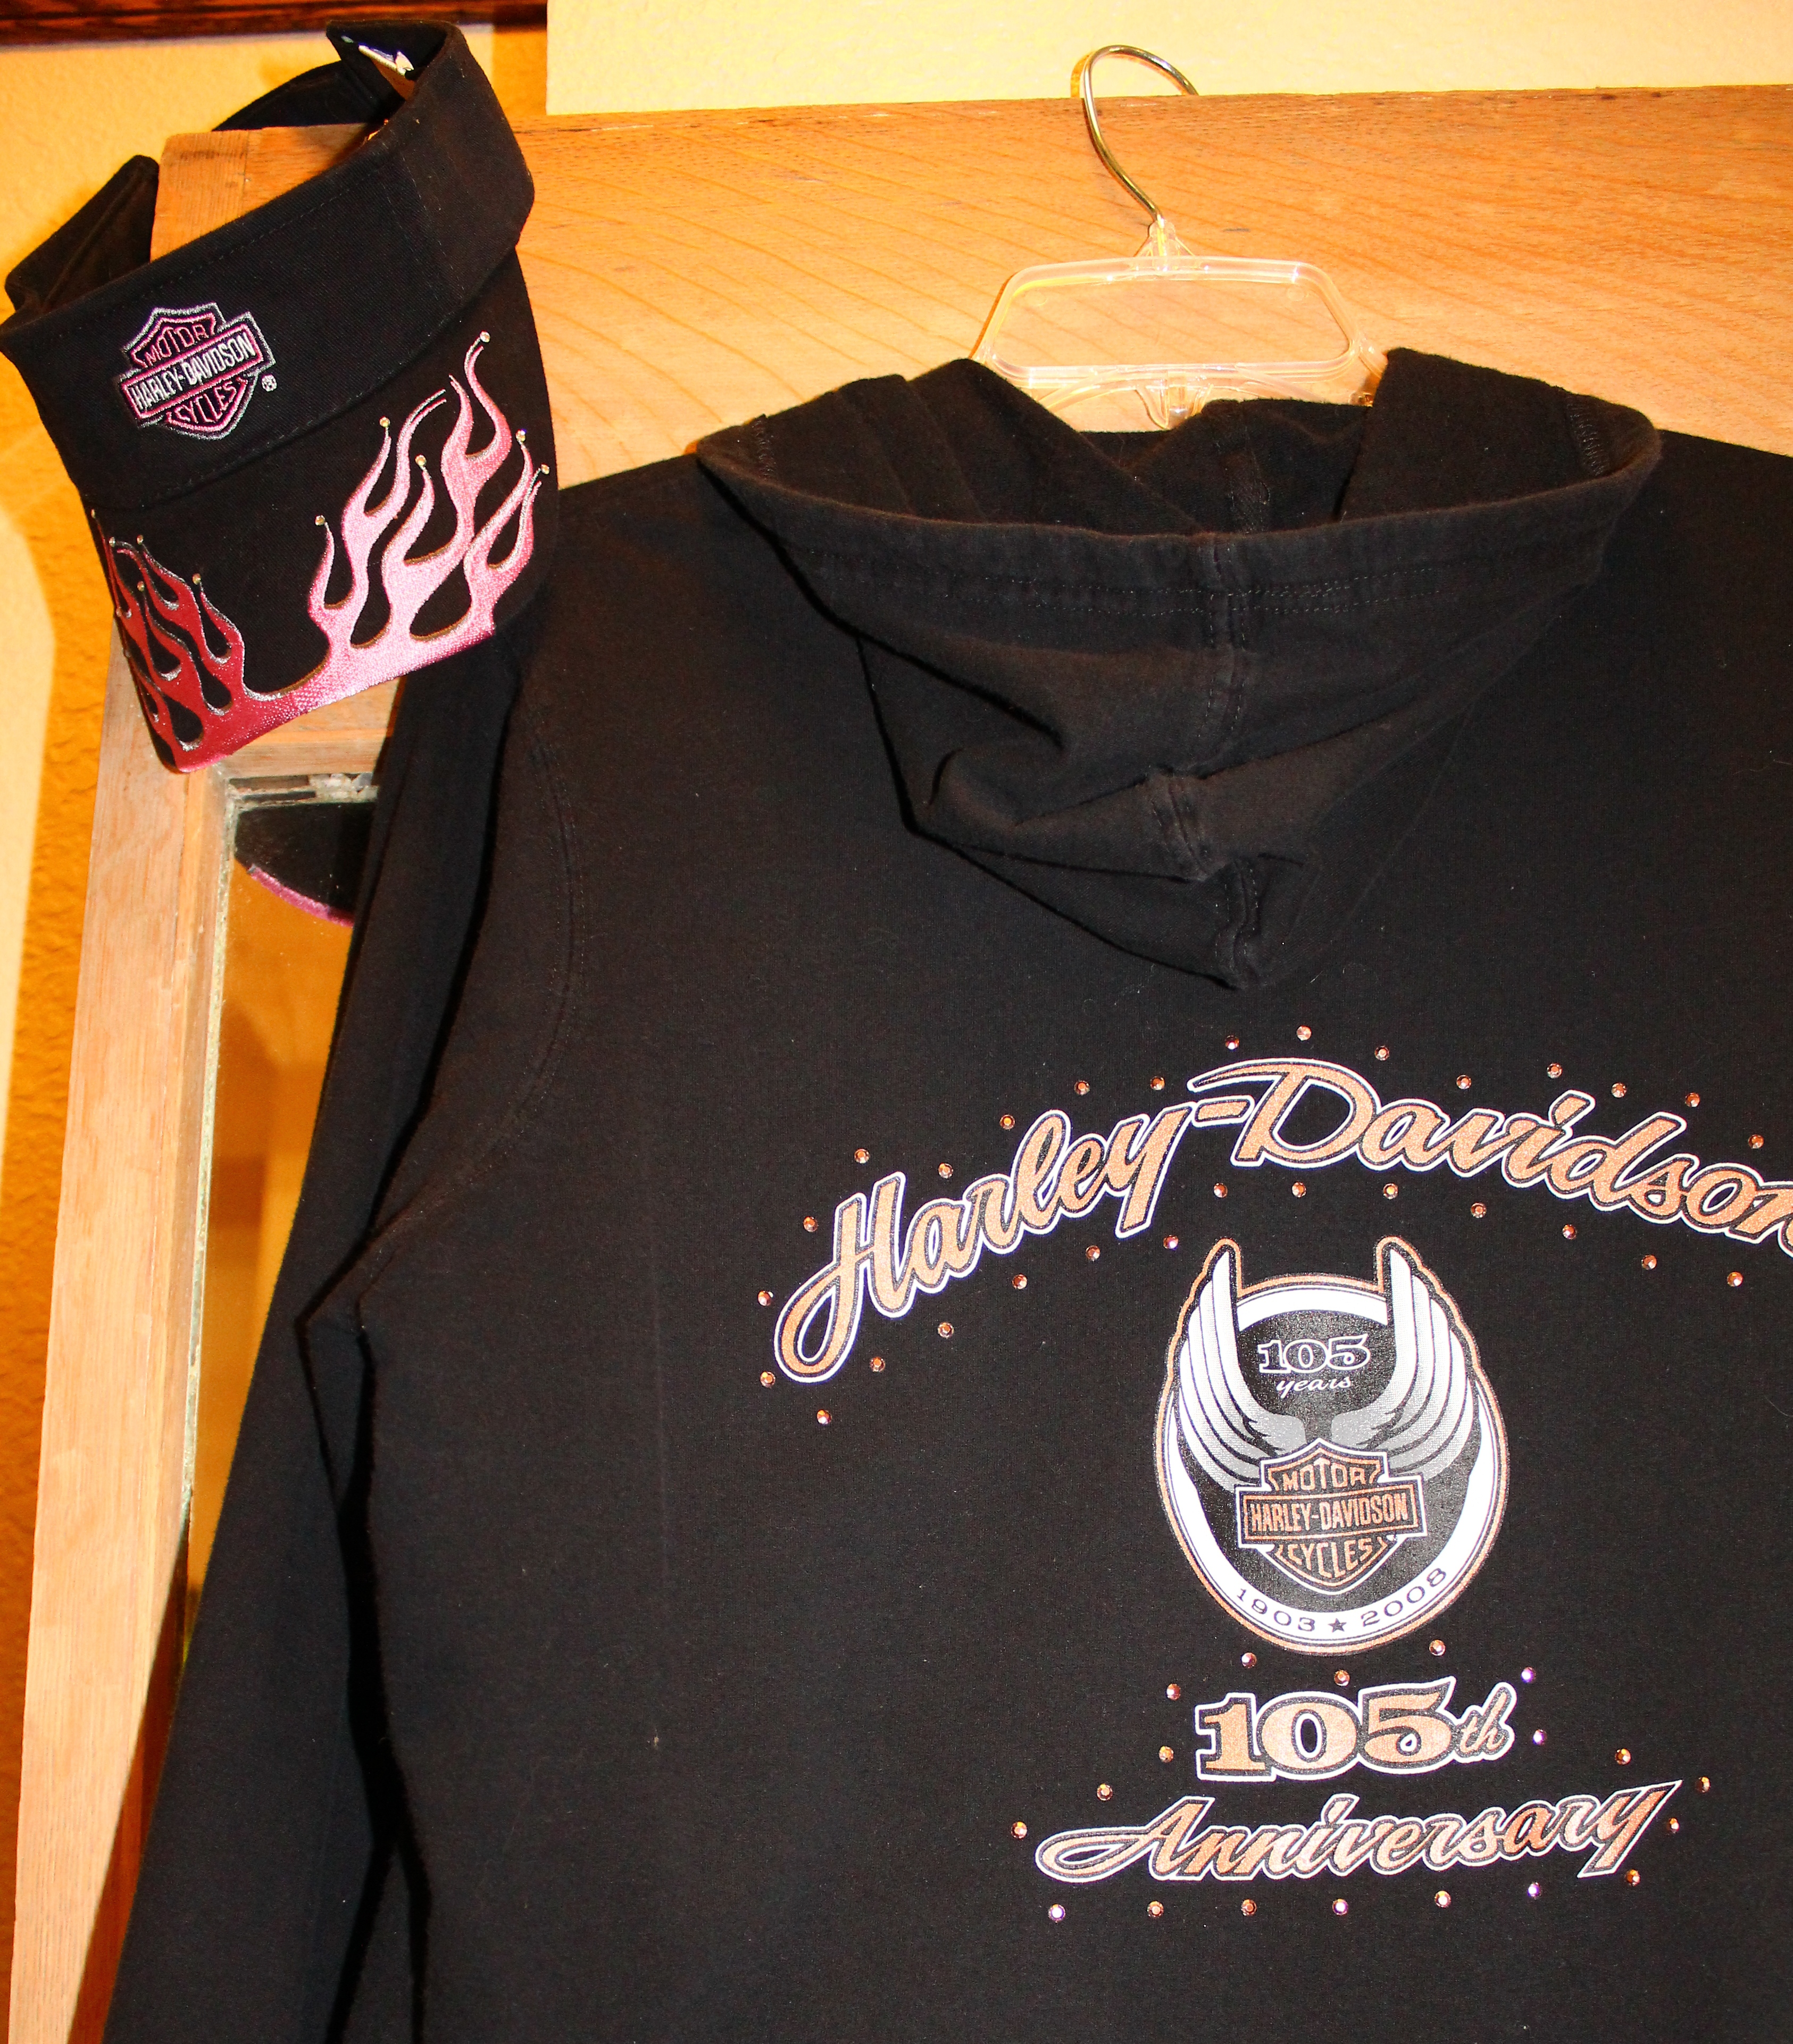 More harley davidson items maggie 39 s closet fashion for Harley davidson decorations for home